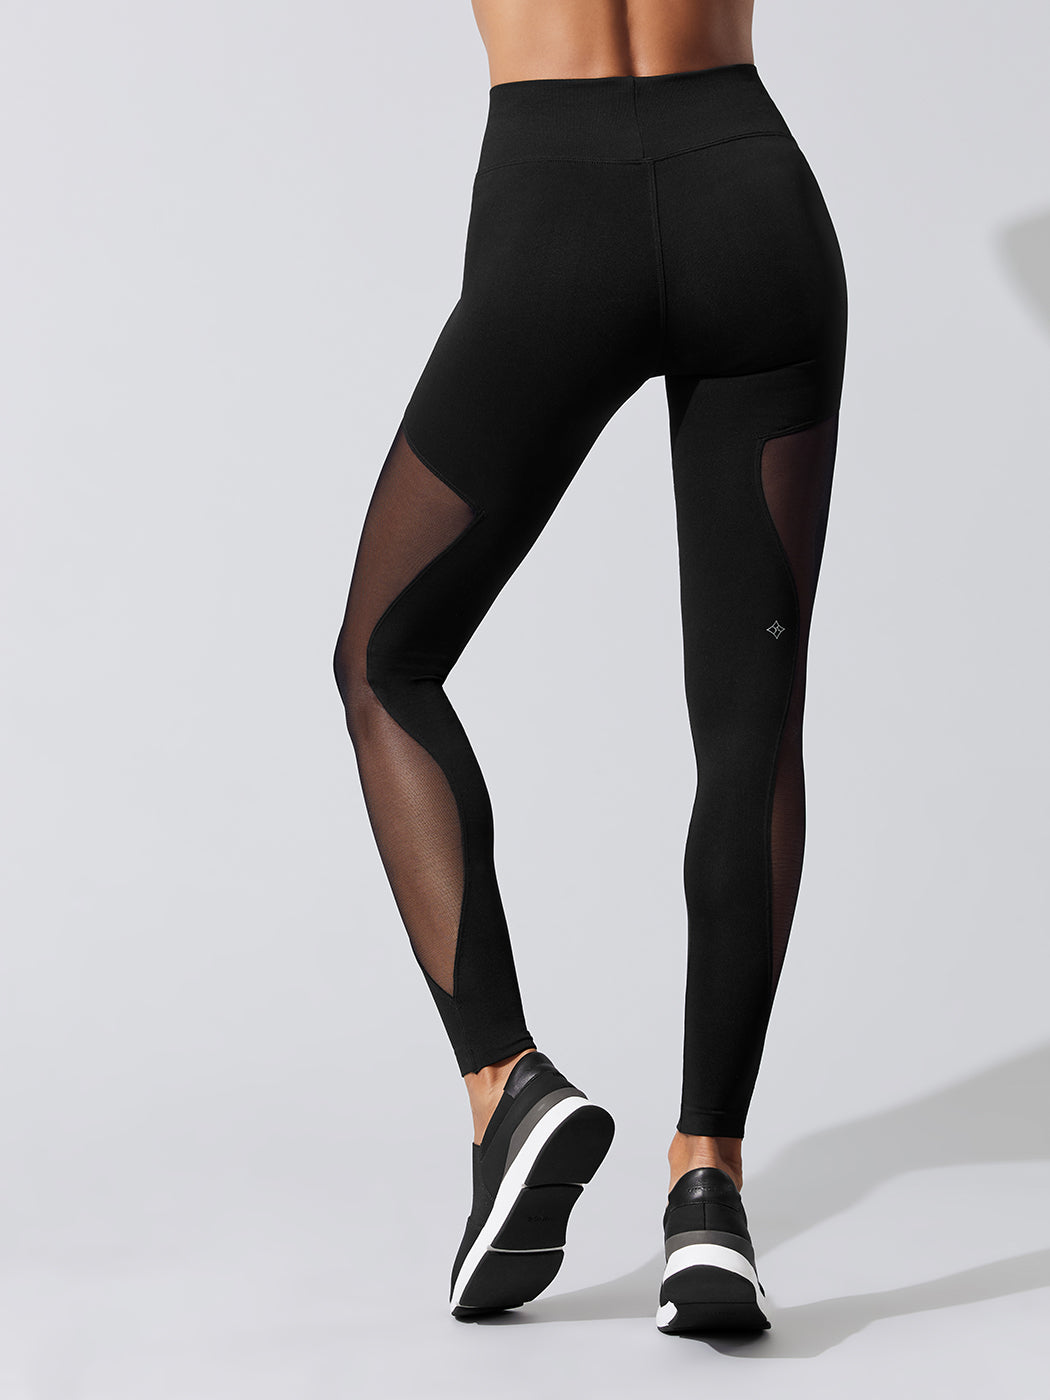 7d4570e06a4e28 Activewear Leggings | Quality, Comfort & Style | Get KITTED